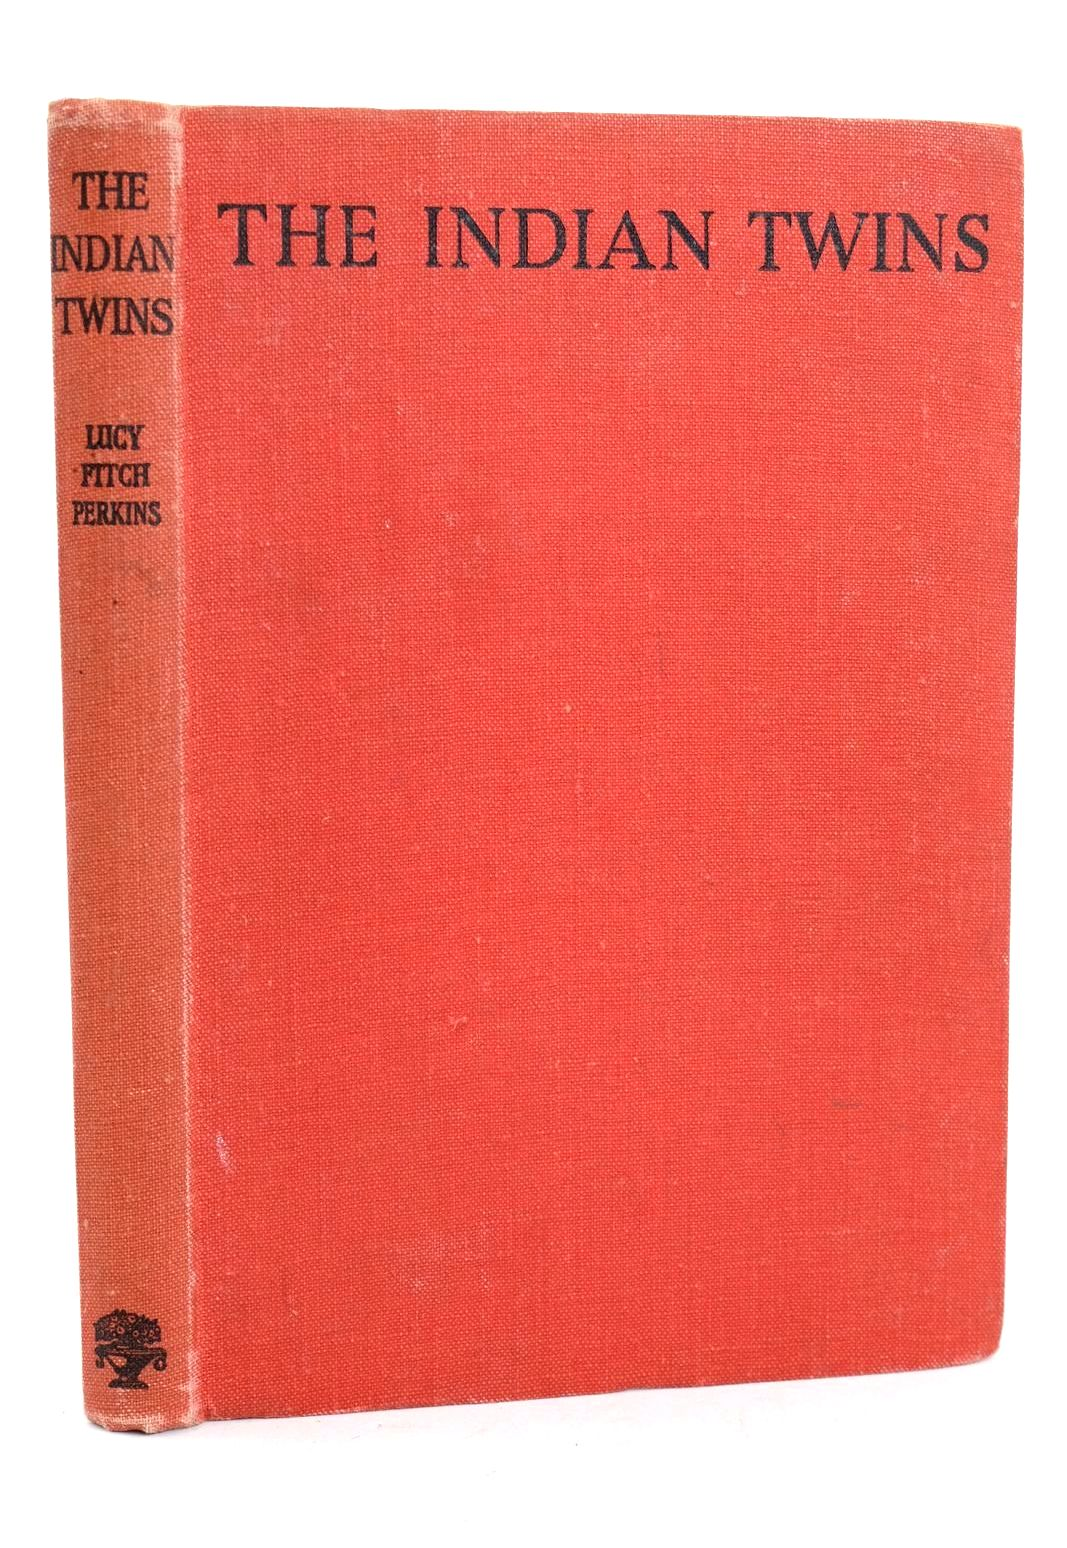 Photo of THE INDIAN TWINS written by Perkins, Lucy Fitch illustrated by Perkins, Lucy Fitch published by Jonathan Cape (STOCK CODE: 1318656)  for sale by Stella & Rose's Books